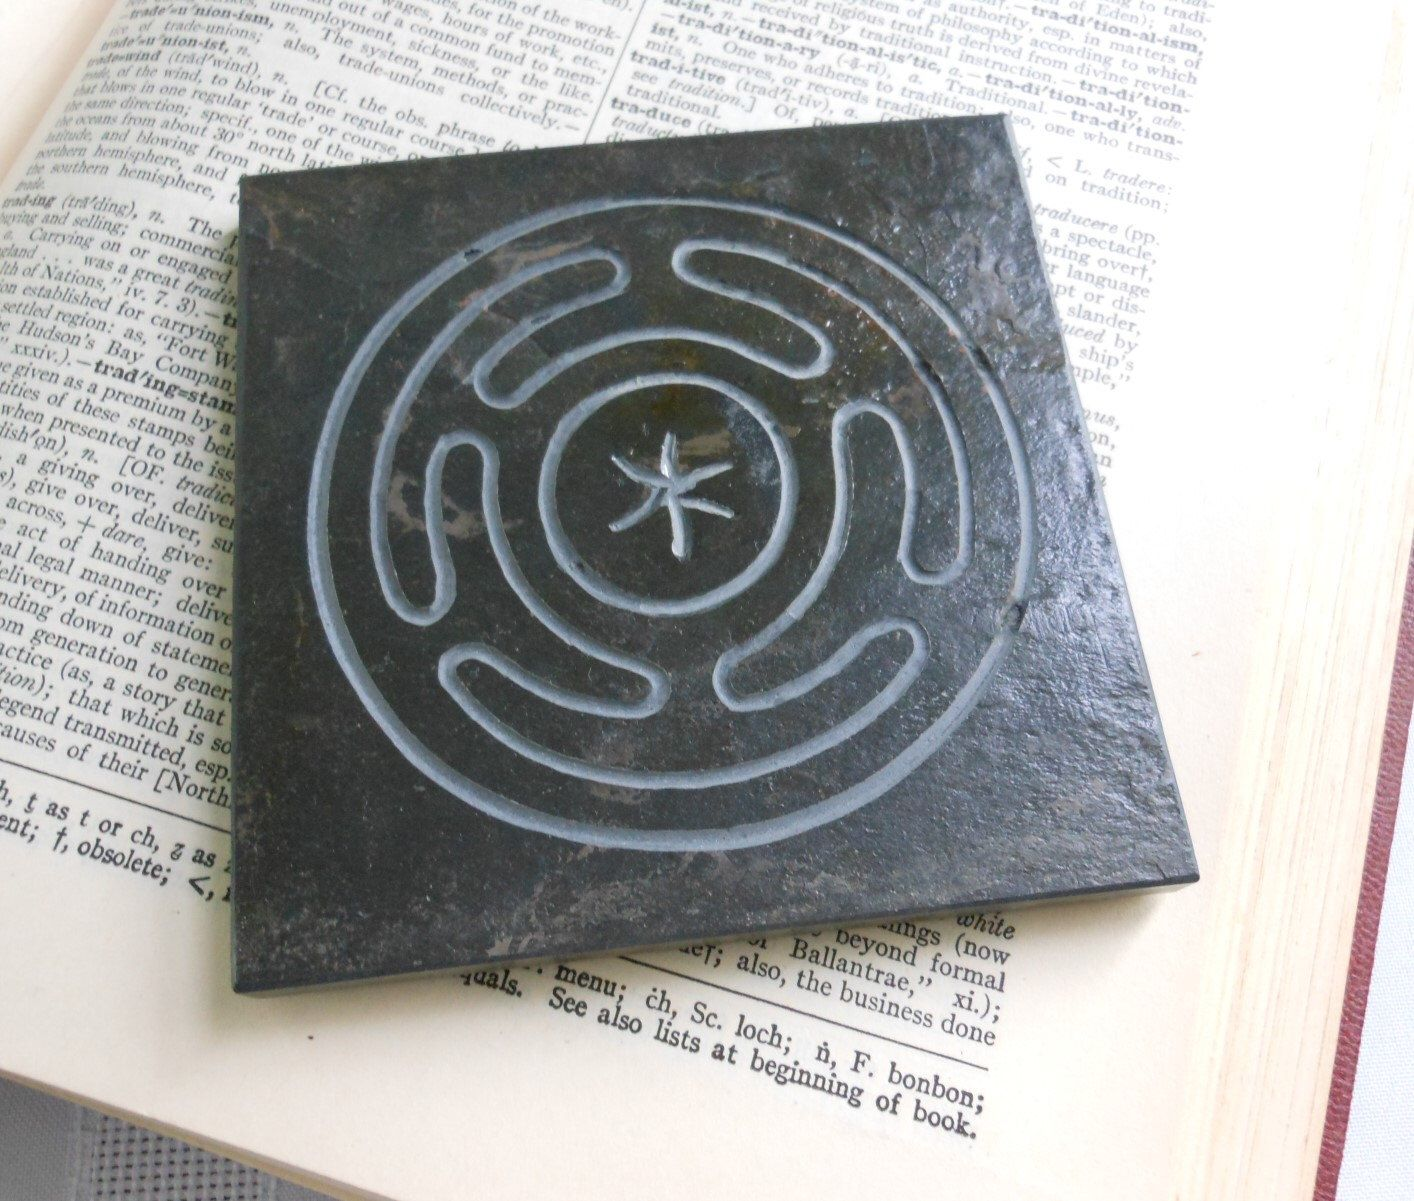 HECATE ALTAR TILE, Hekate's Wheel Art Tile - Hand-Carved Slate Stone, Diety Stone, Altar Stone, Goddess Offering, Hekate Wiccan Decor Gift #wiccandecor